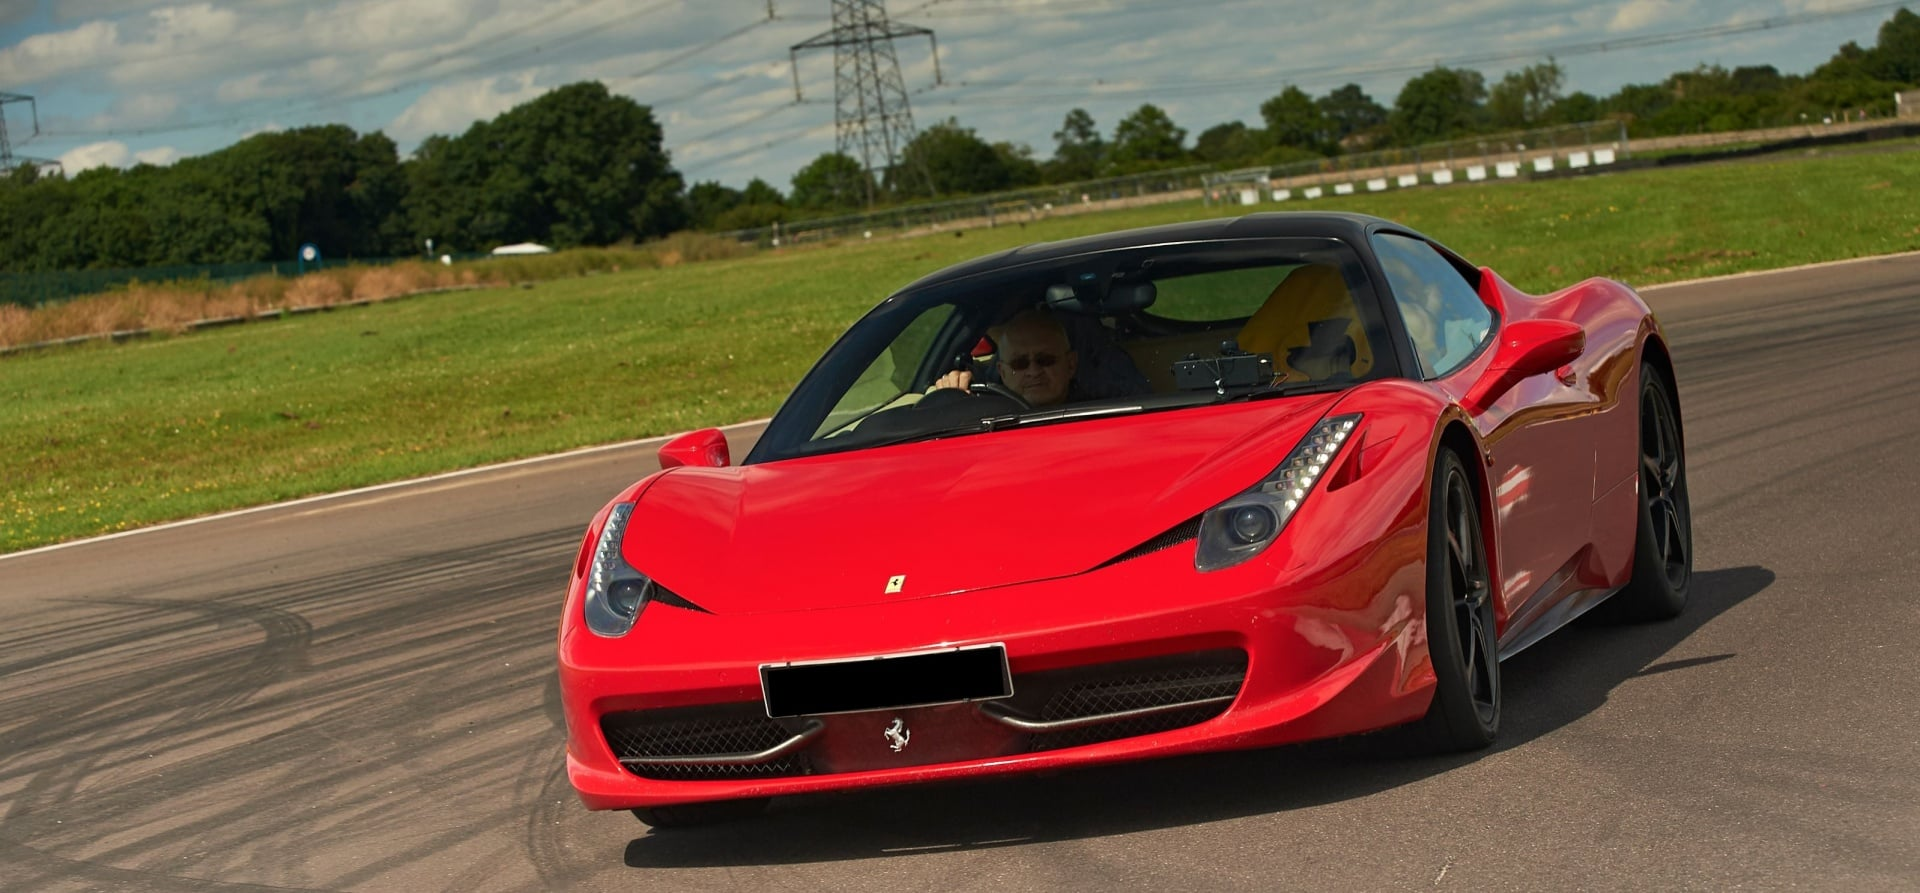 Supercar-Driving-Choice-Ferrari-1920x1080-resize.jpg